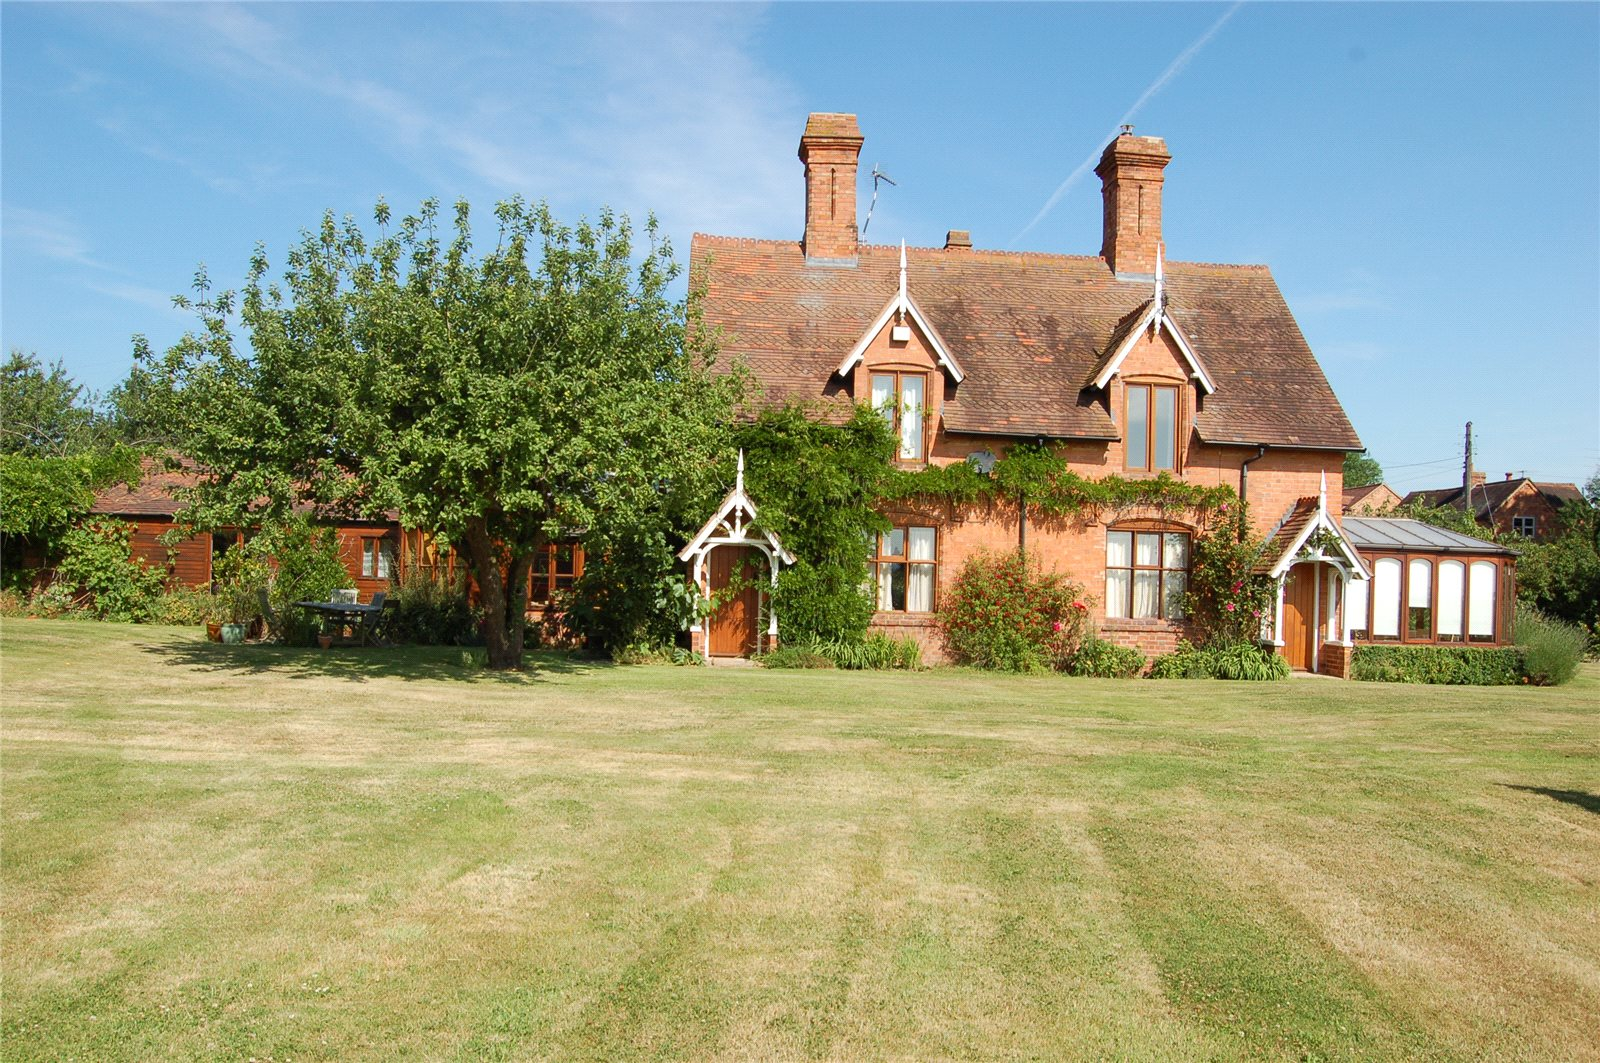 Single Family Home for Sale at Kings Lane, Snitterfield, Stratford-upon-Avon, Warwickshire, CV37 Stratford Upon Avon, England